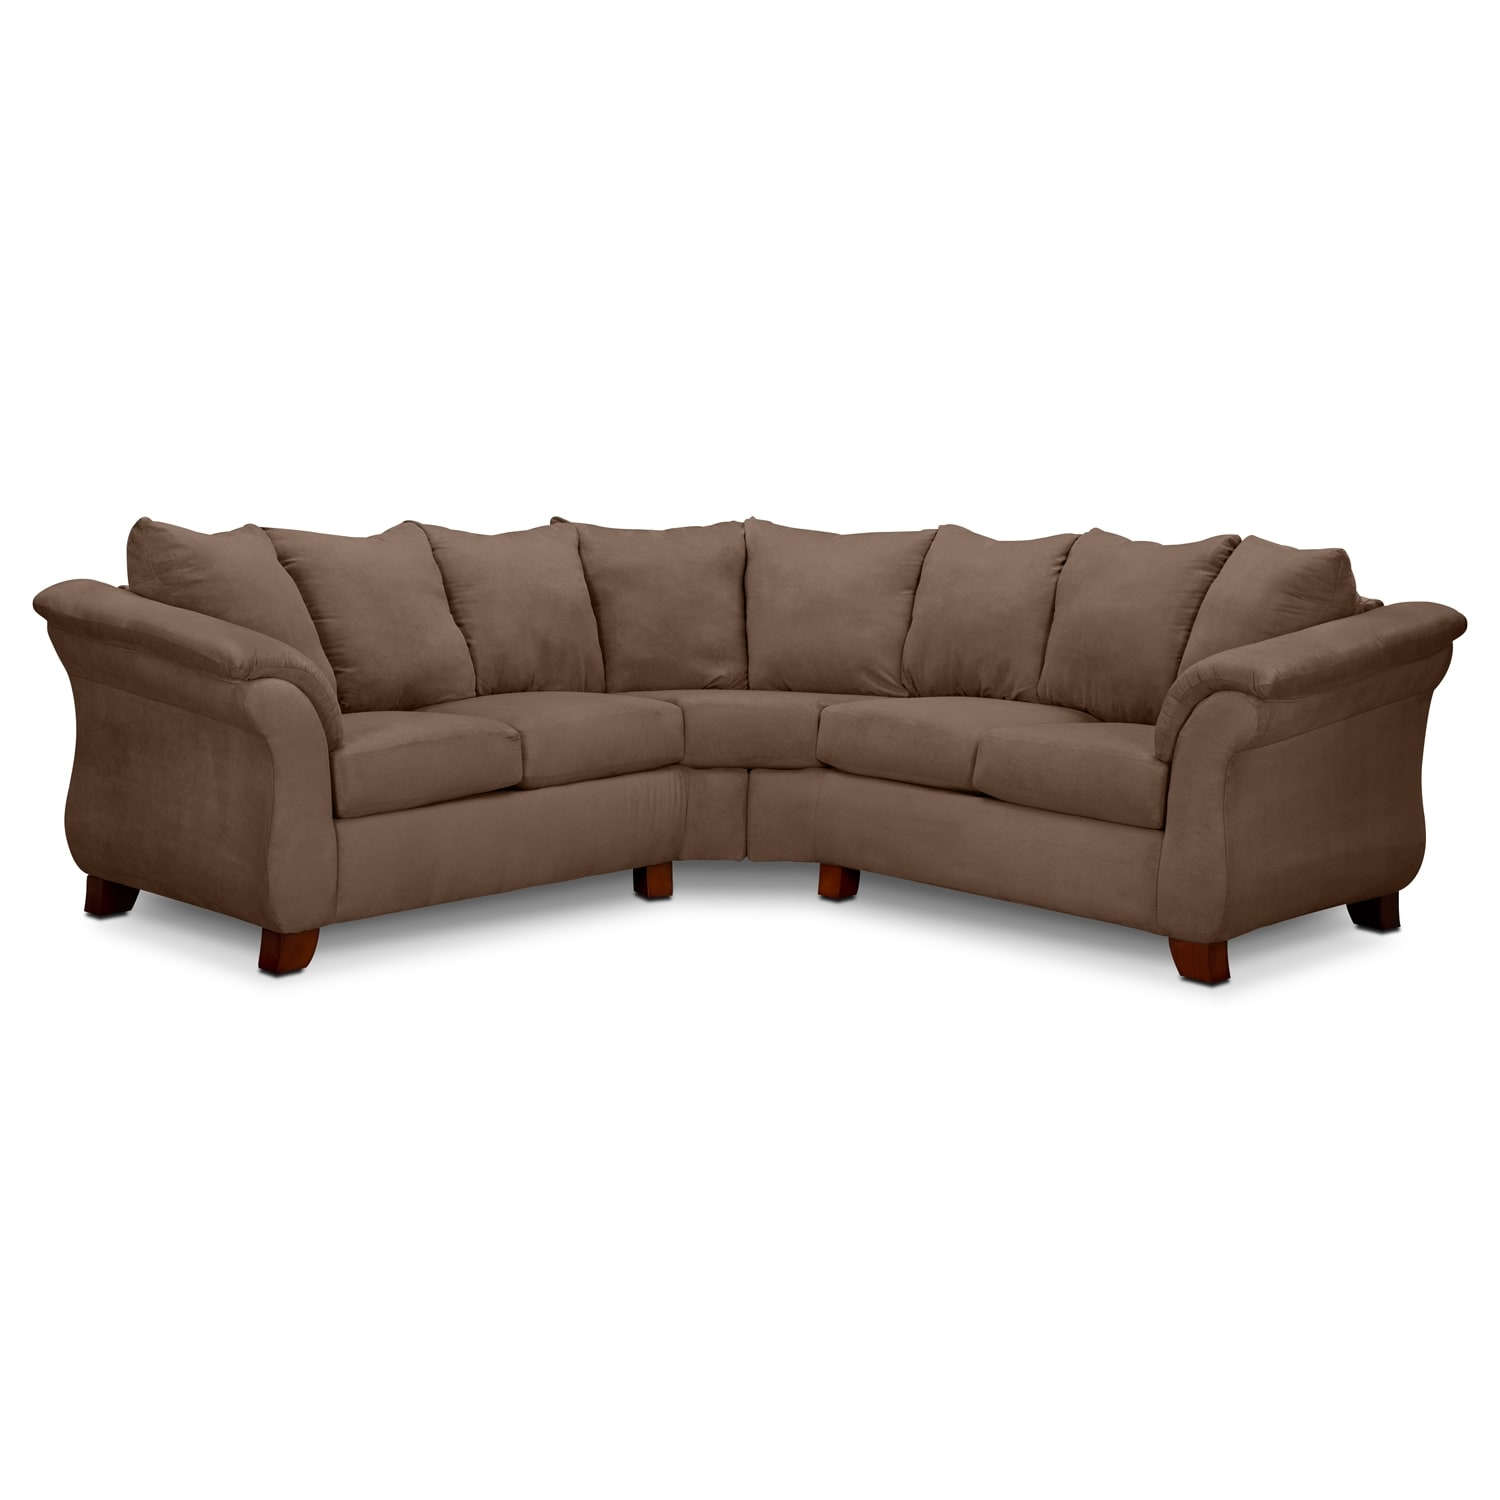 American Signature Furniture: Adrian 2-Piece Sectional - Taupe